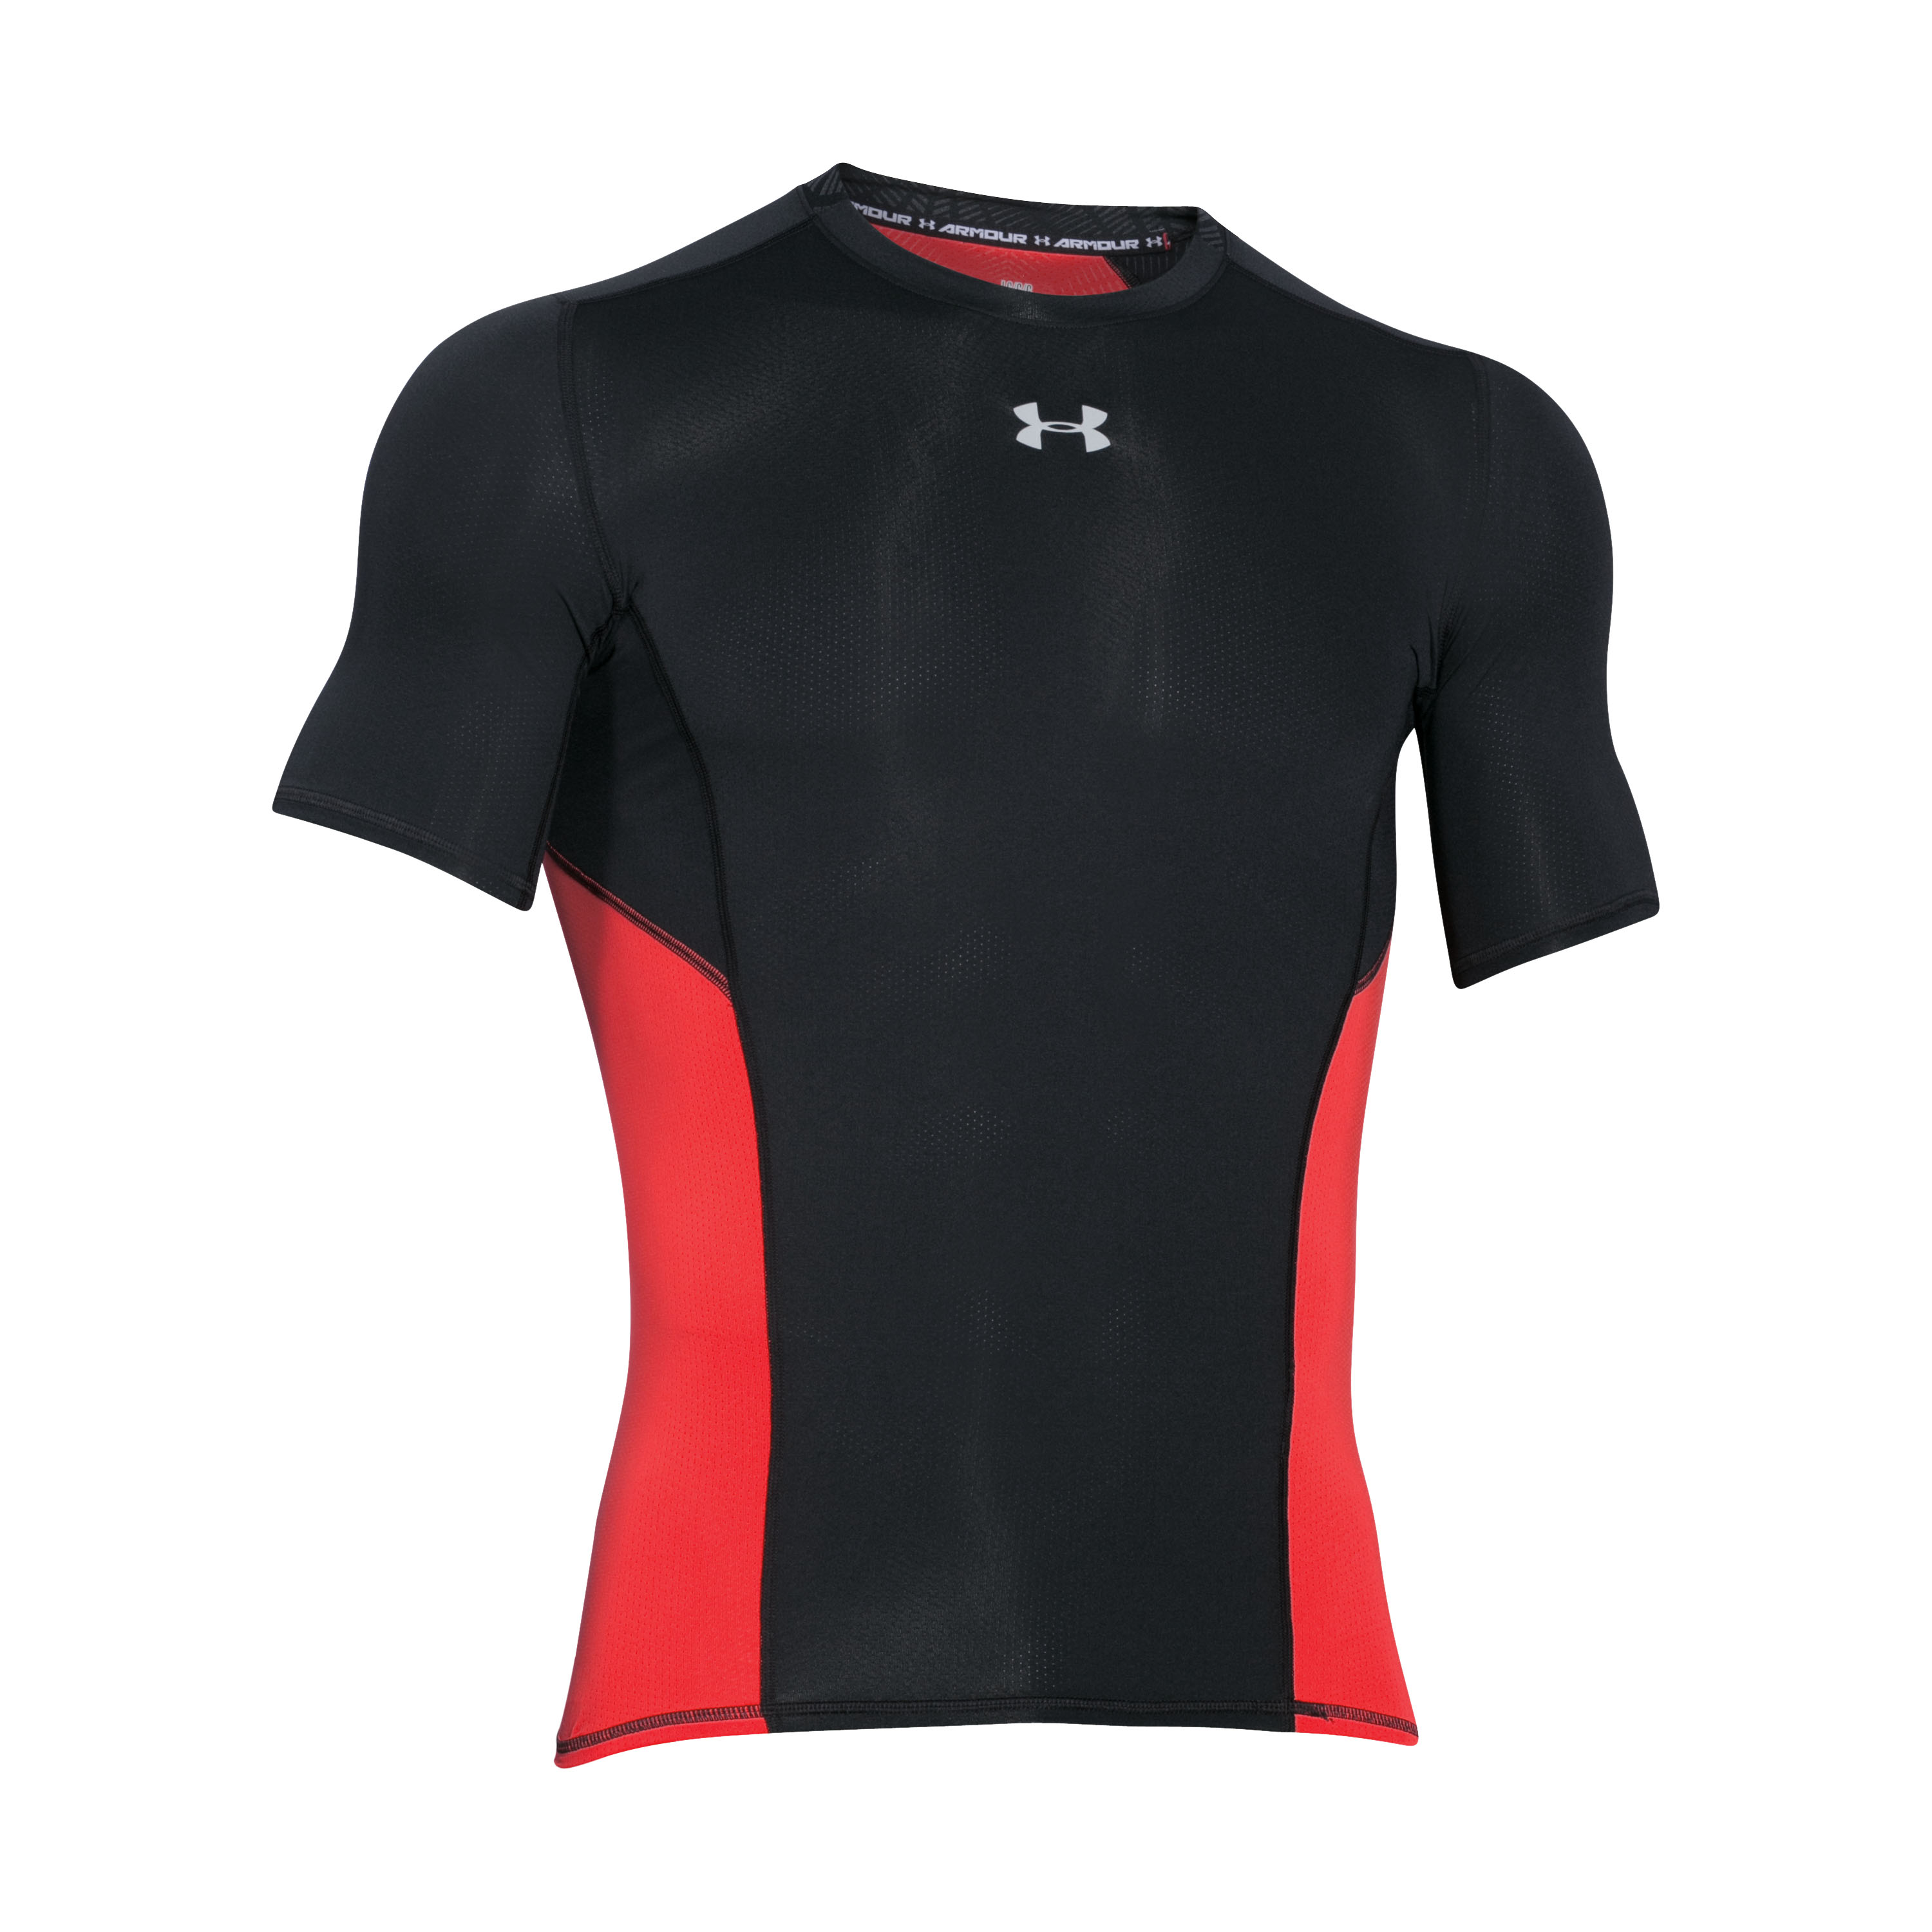 Under Armour Shirt Compression Short Sleeve black